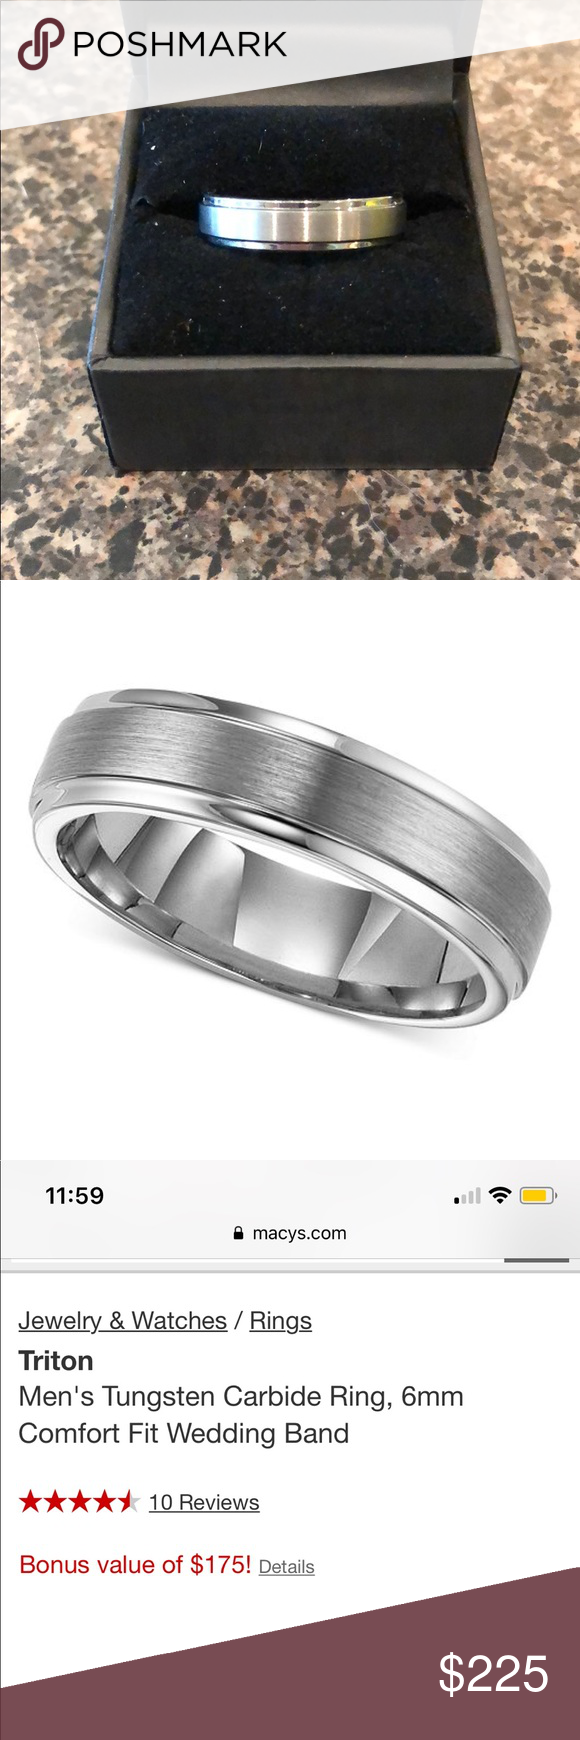 Men S Wedding Ring Comfort Fit Wedding Band Never Been Worn New In Box Too Big Of Size Triton Comfort Fit Wedding Band Big Wedding Rings Men S Wedding Ring